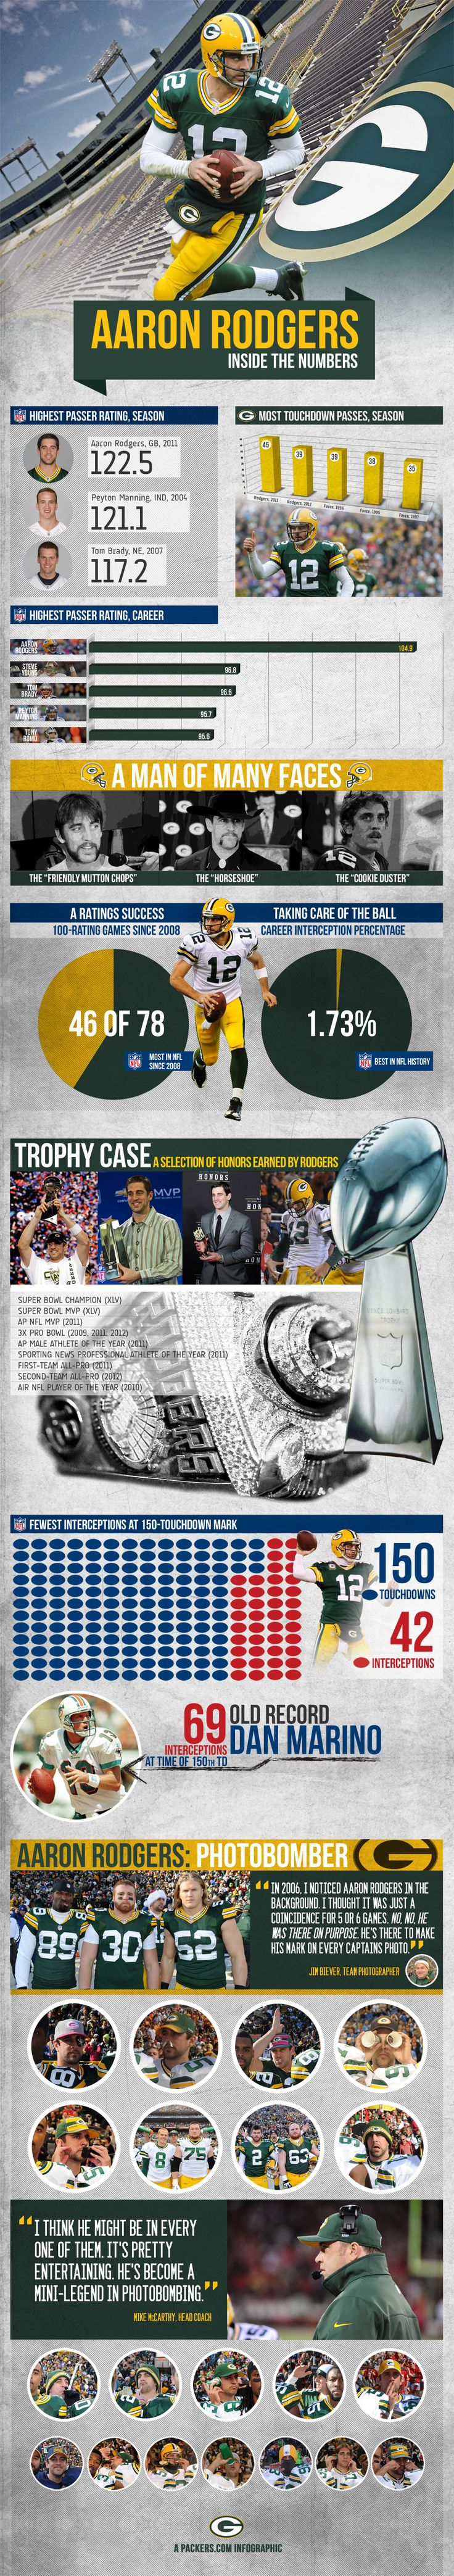 A look at the career of Aaron Rodgers, one of the most marketable players in the NFL...